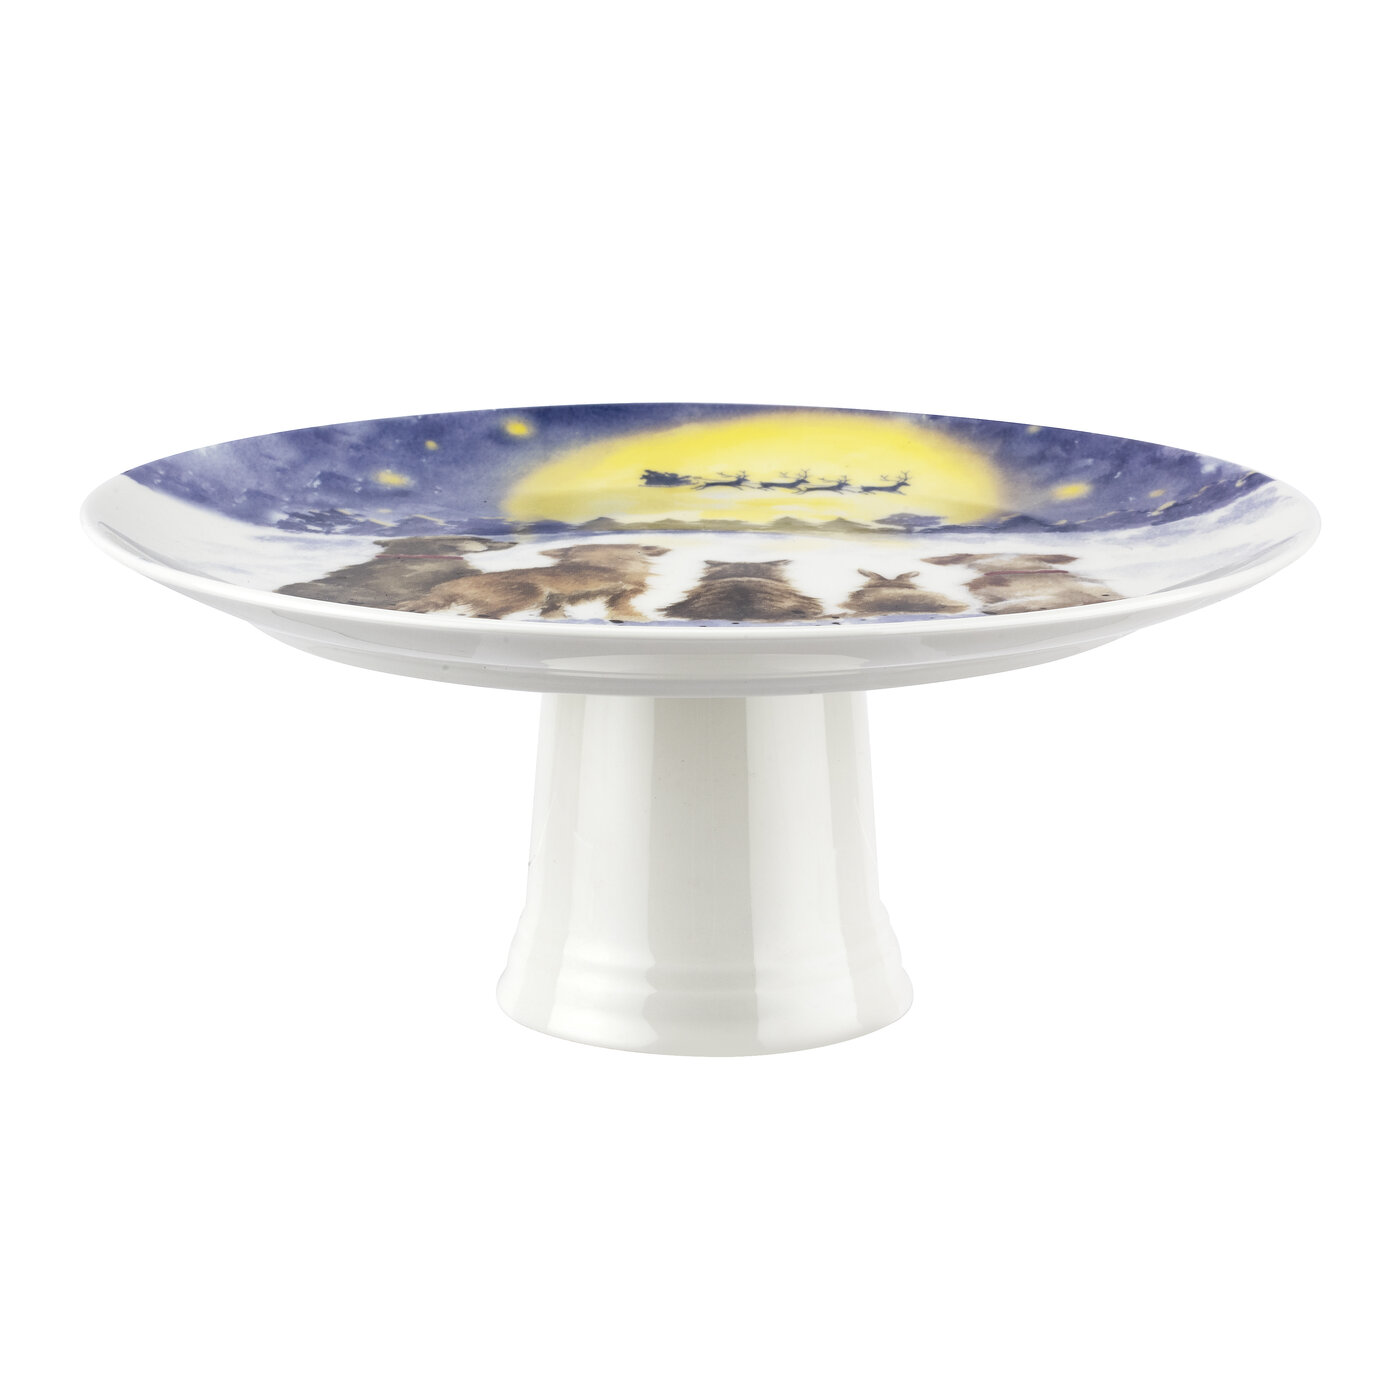 Royal Worcester Wrendale Designs 9.75 Inch Footed Cake Plate (The Magic of Christmas) image number 2